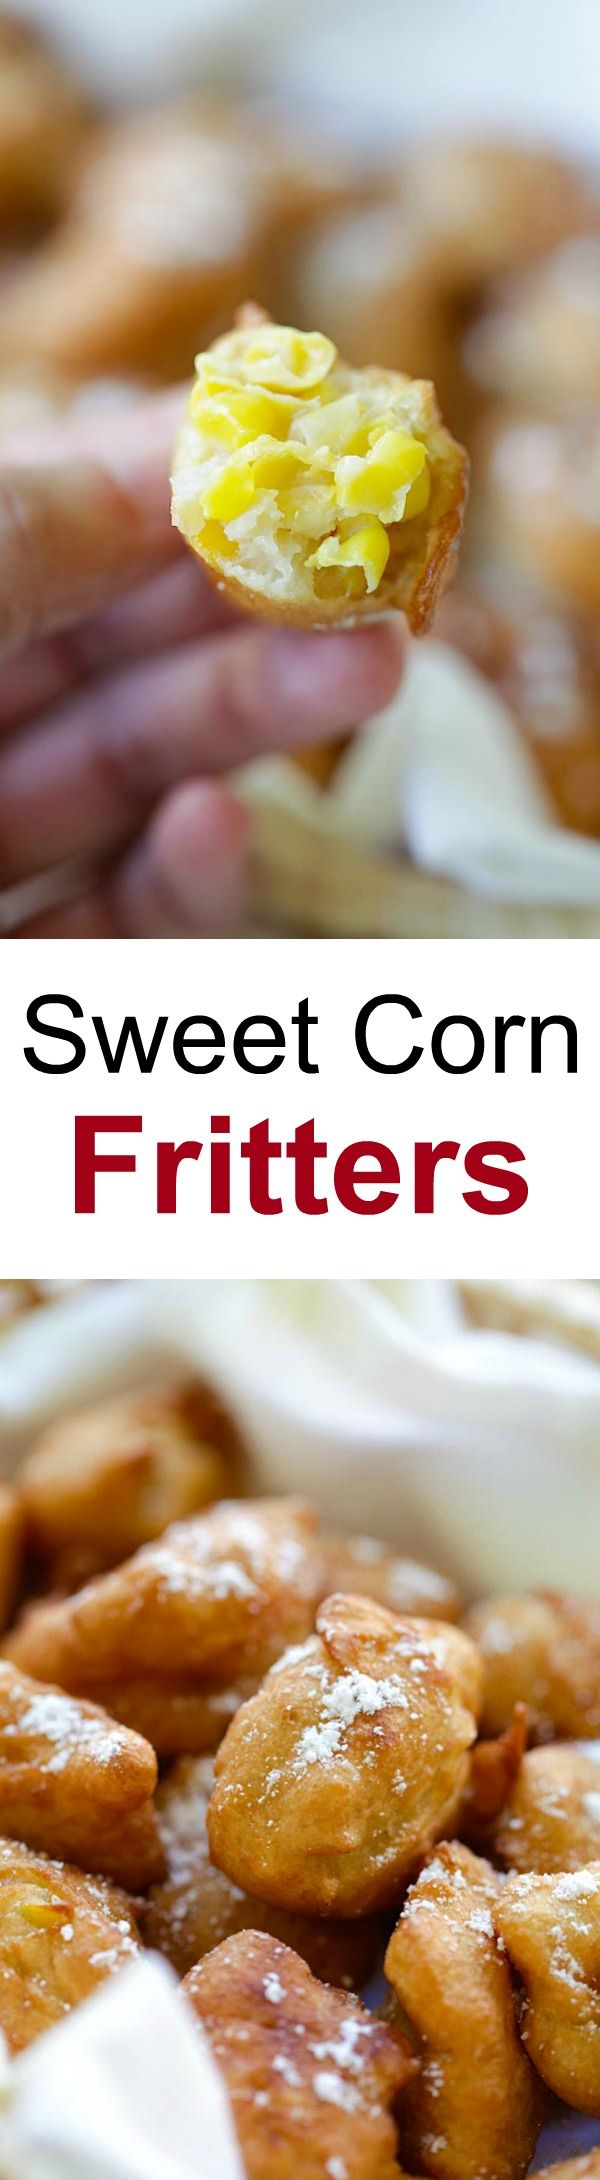 Sweet Corn Fritters – crispy, sweet fried fritters made with creamed corns. Takes 20 mins to make, so easy, so good & best for Game Day | rasamalaysia.com #meatlessmondaynight #ad